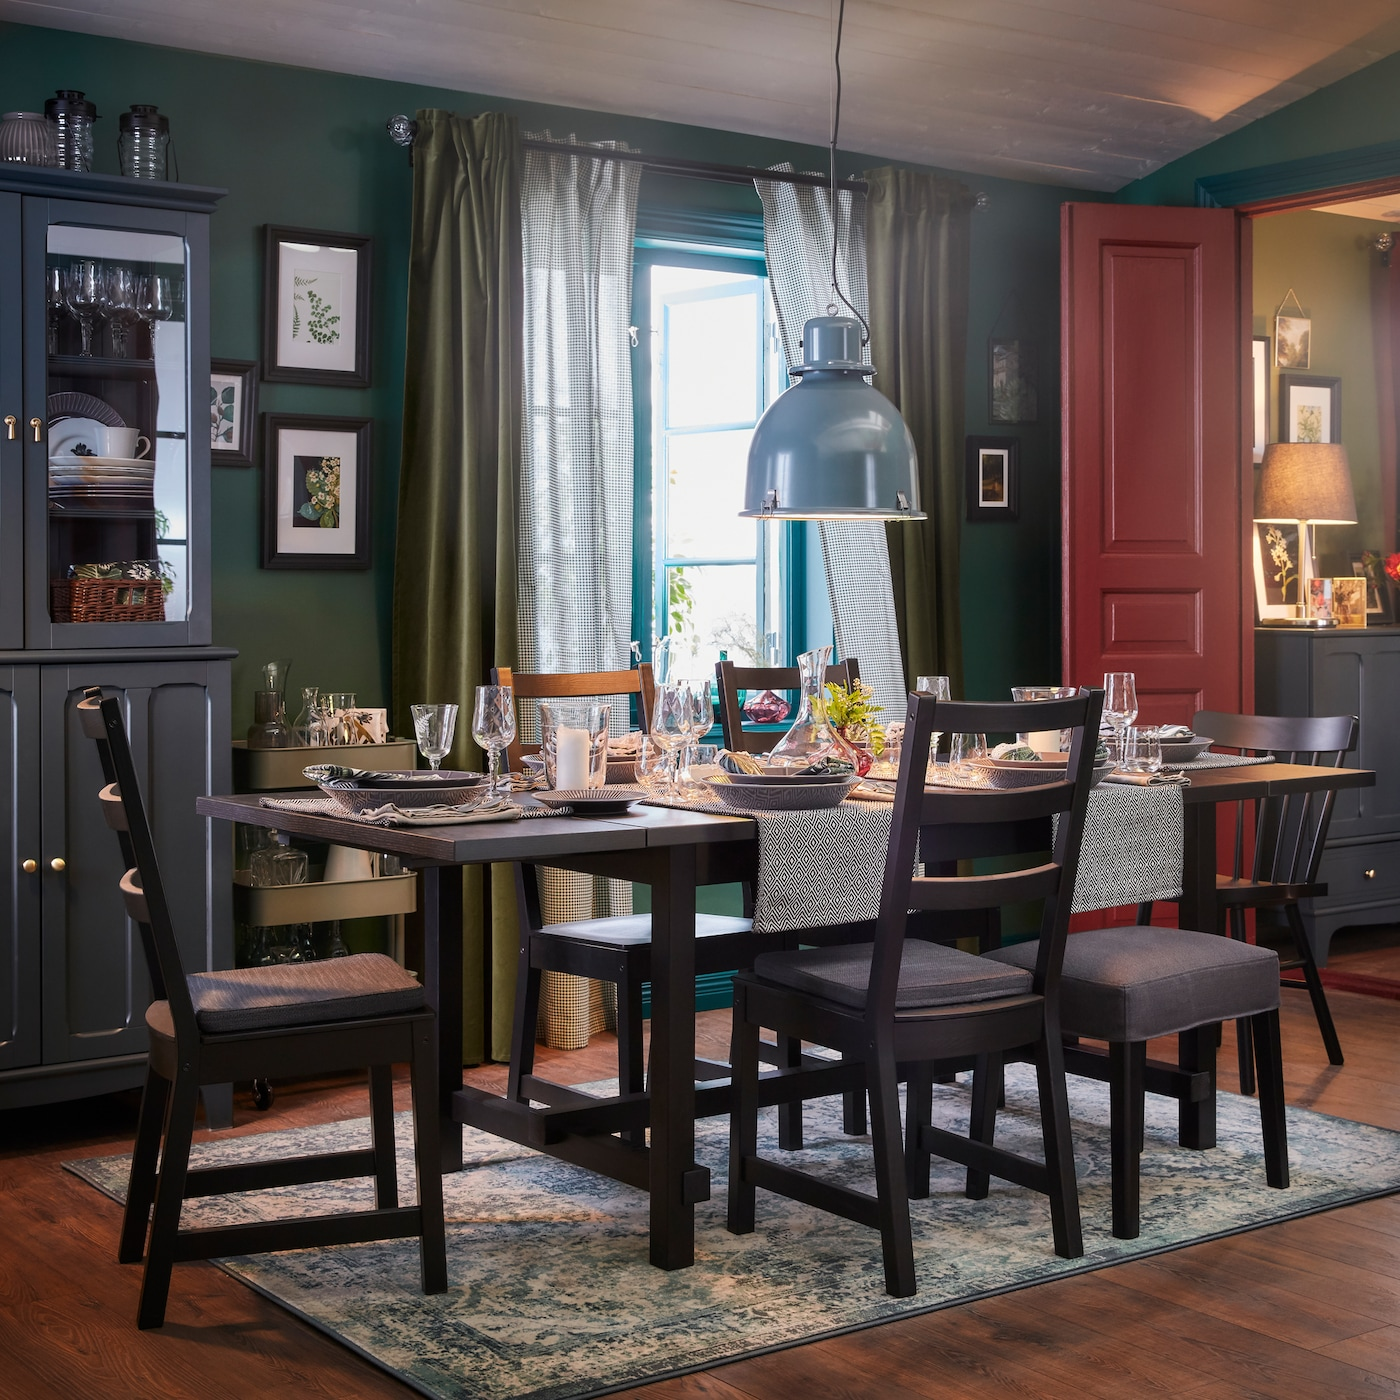 A dining room with an extended table and five chairs in black, an oriental-patterned rug and a grey-turquoise pendant lamp.